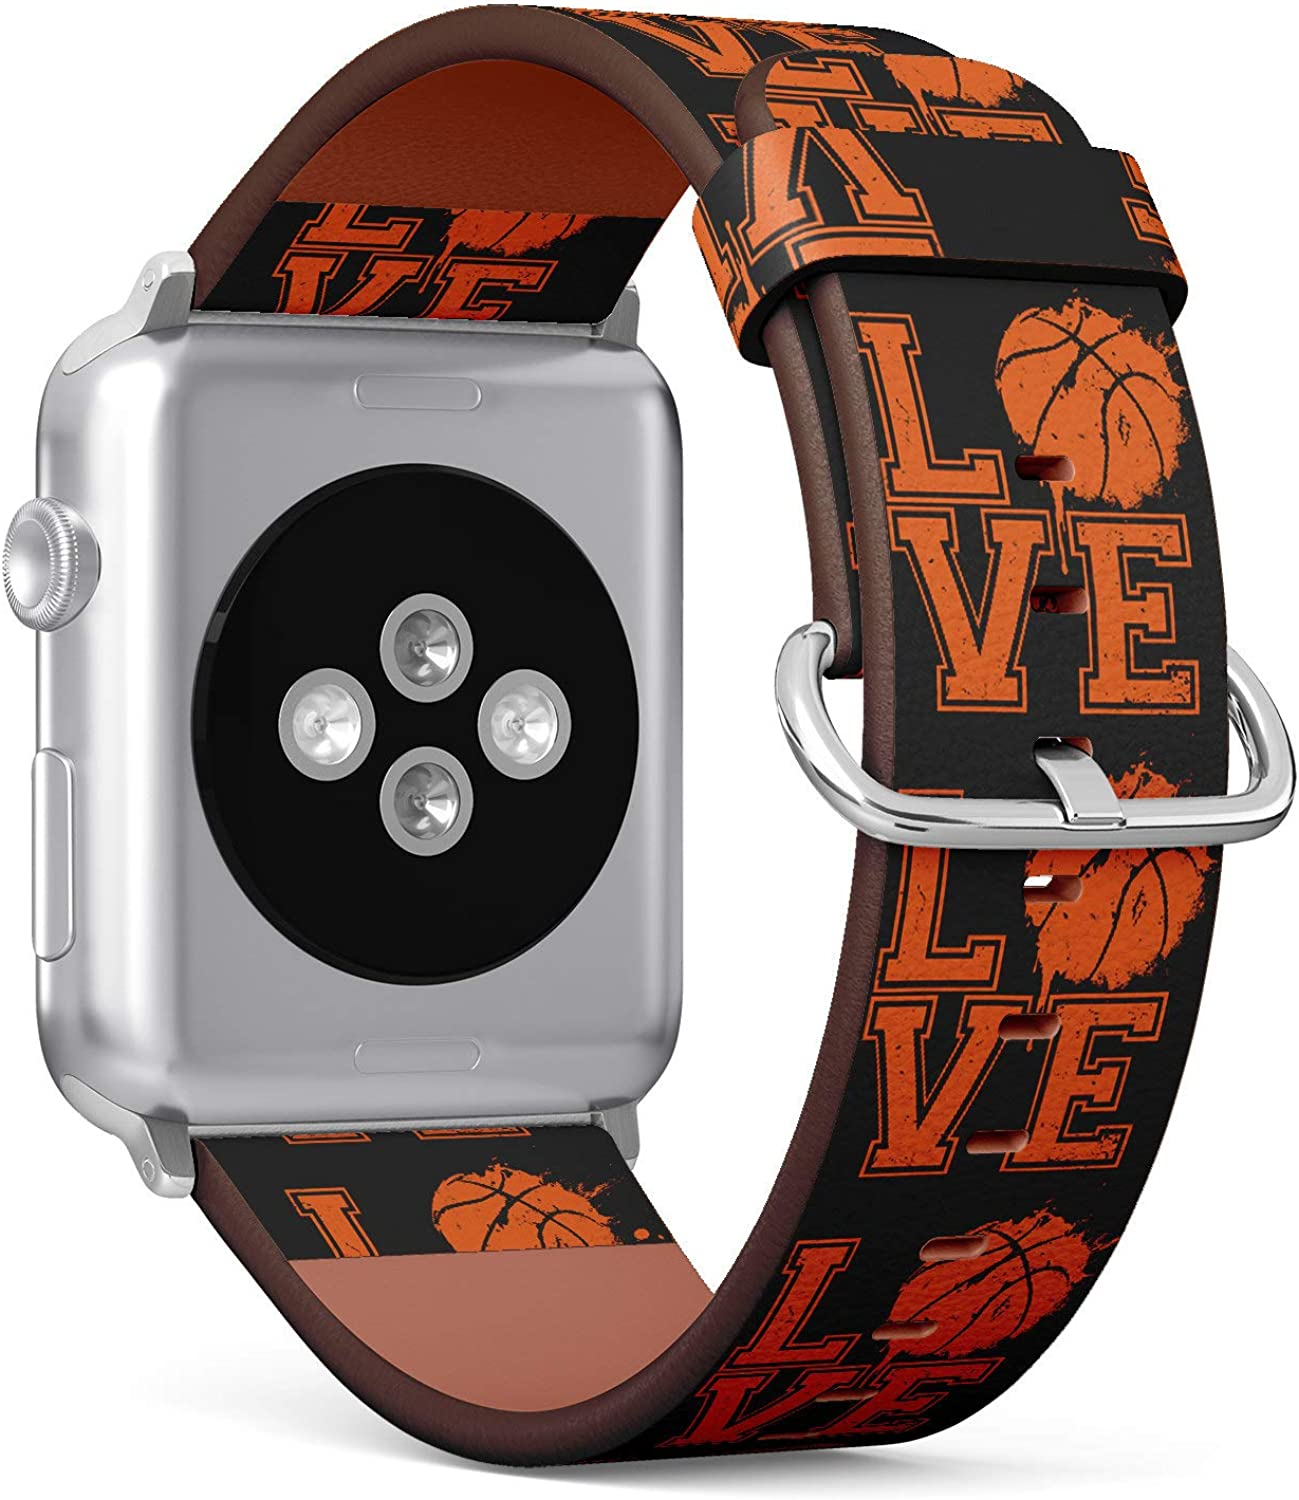 (Typographical Text I Love Basketball) Patterned Leather Wristband Strap for Apple Watch Series 4/3/2/1 gen,Replacement for iWatch 38mm / 40mm Bands